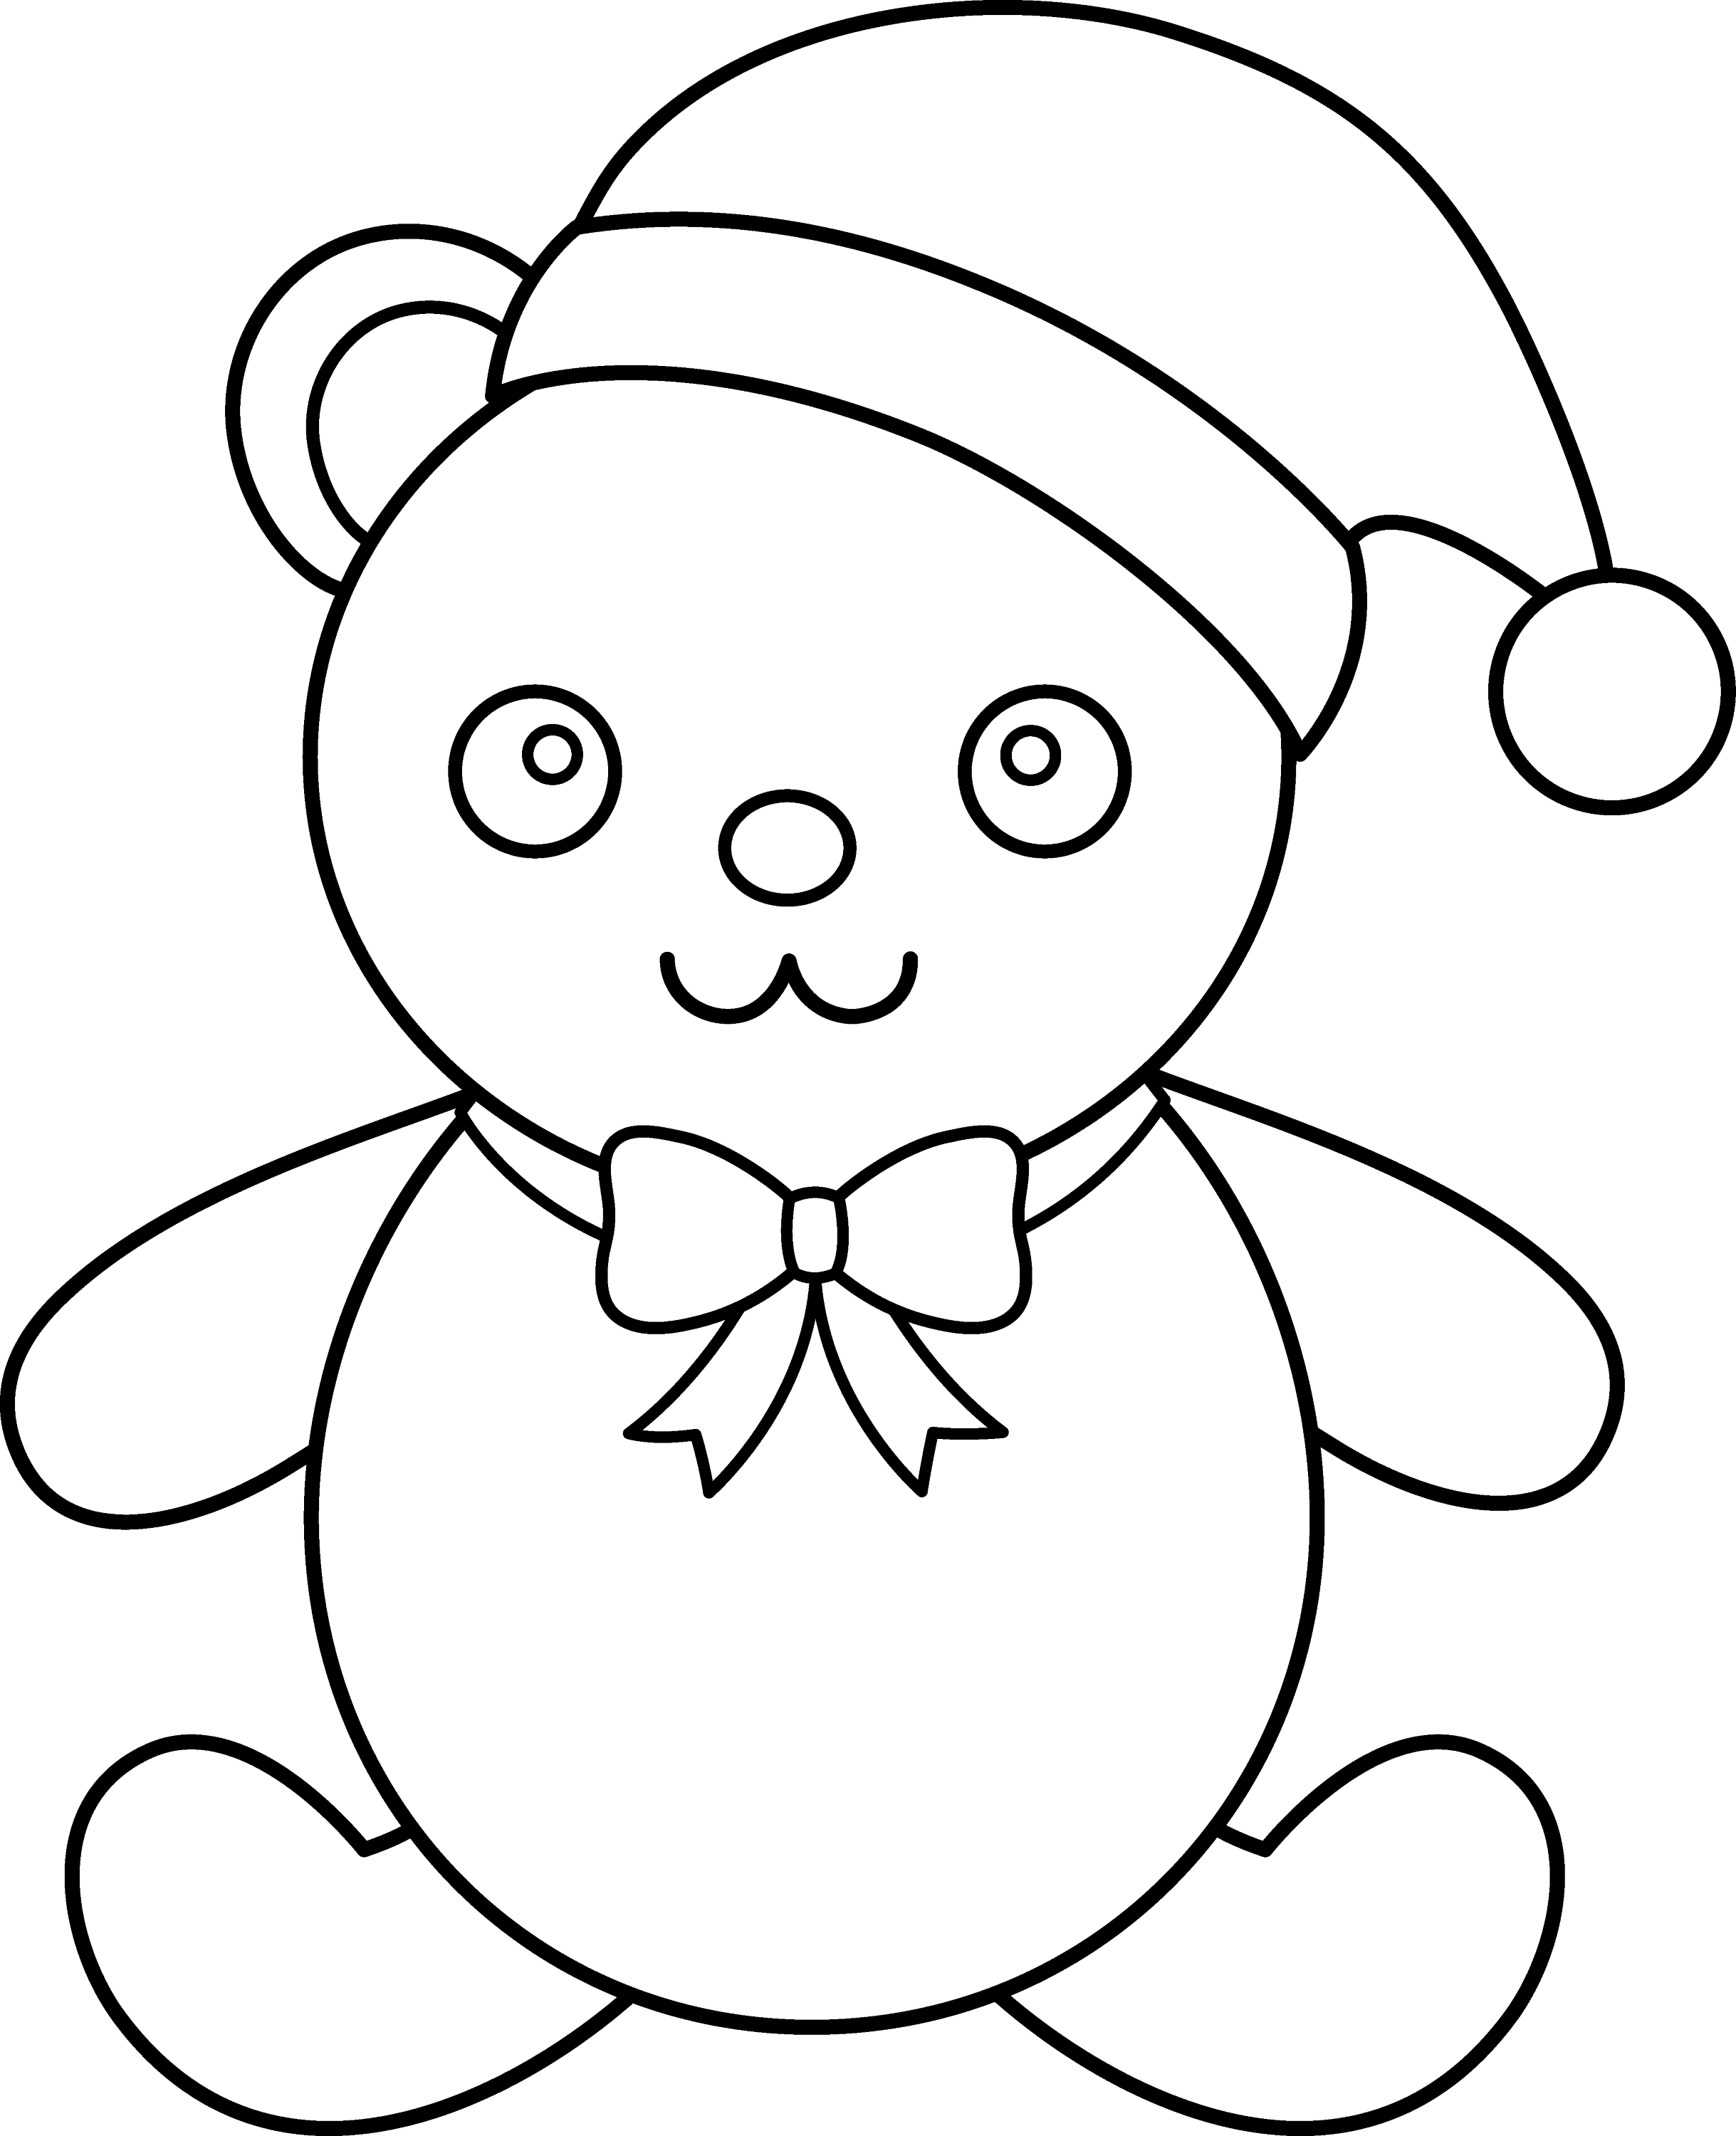 Christmas Teddy Bear Line Art